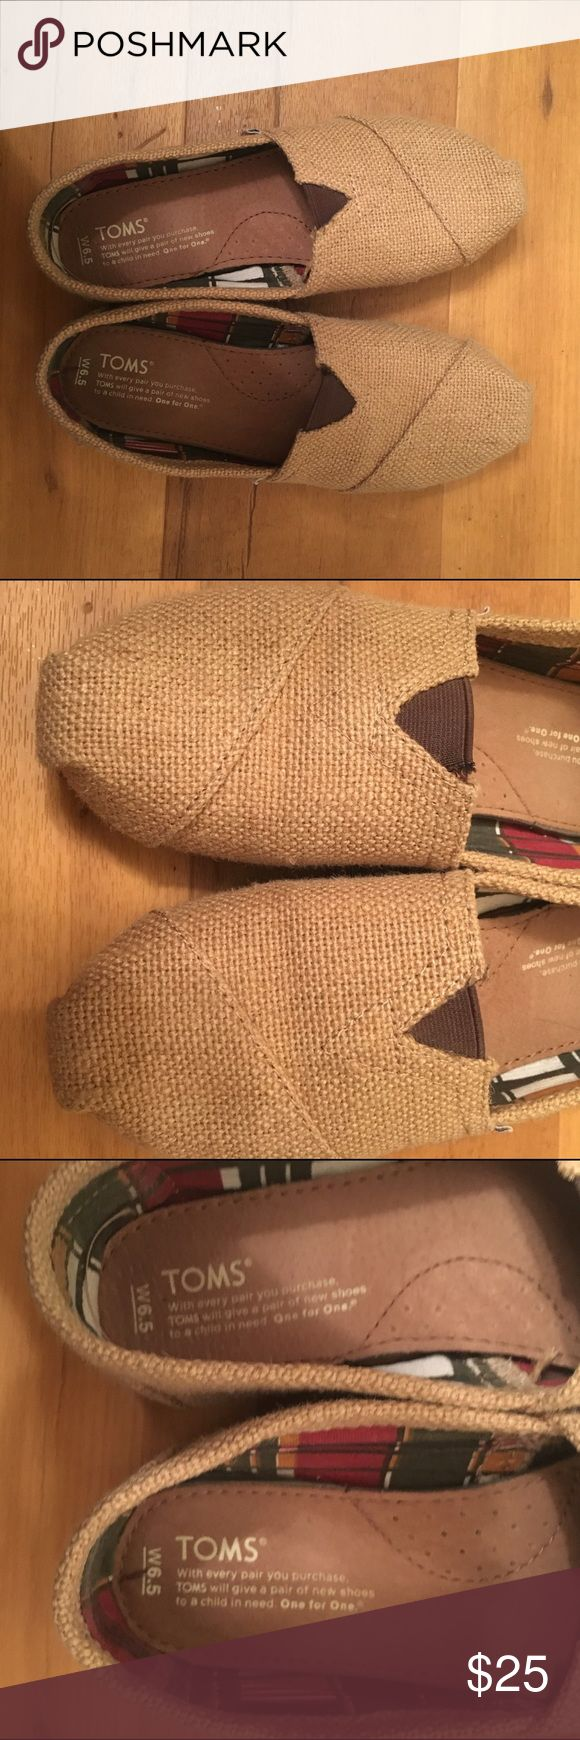 Burlap Toms Shoes Good condition | Worn fewer than 10 times | No holes TOMS Shoes Flats & Loafers